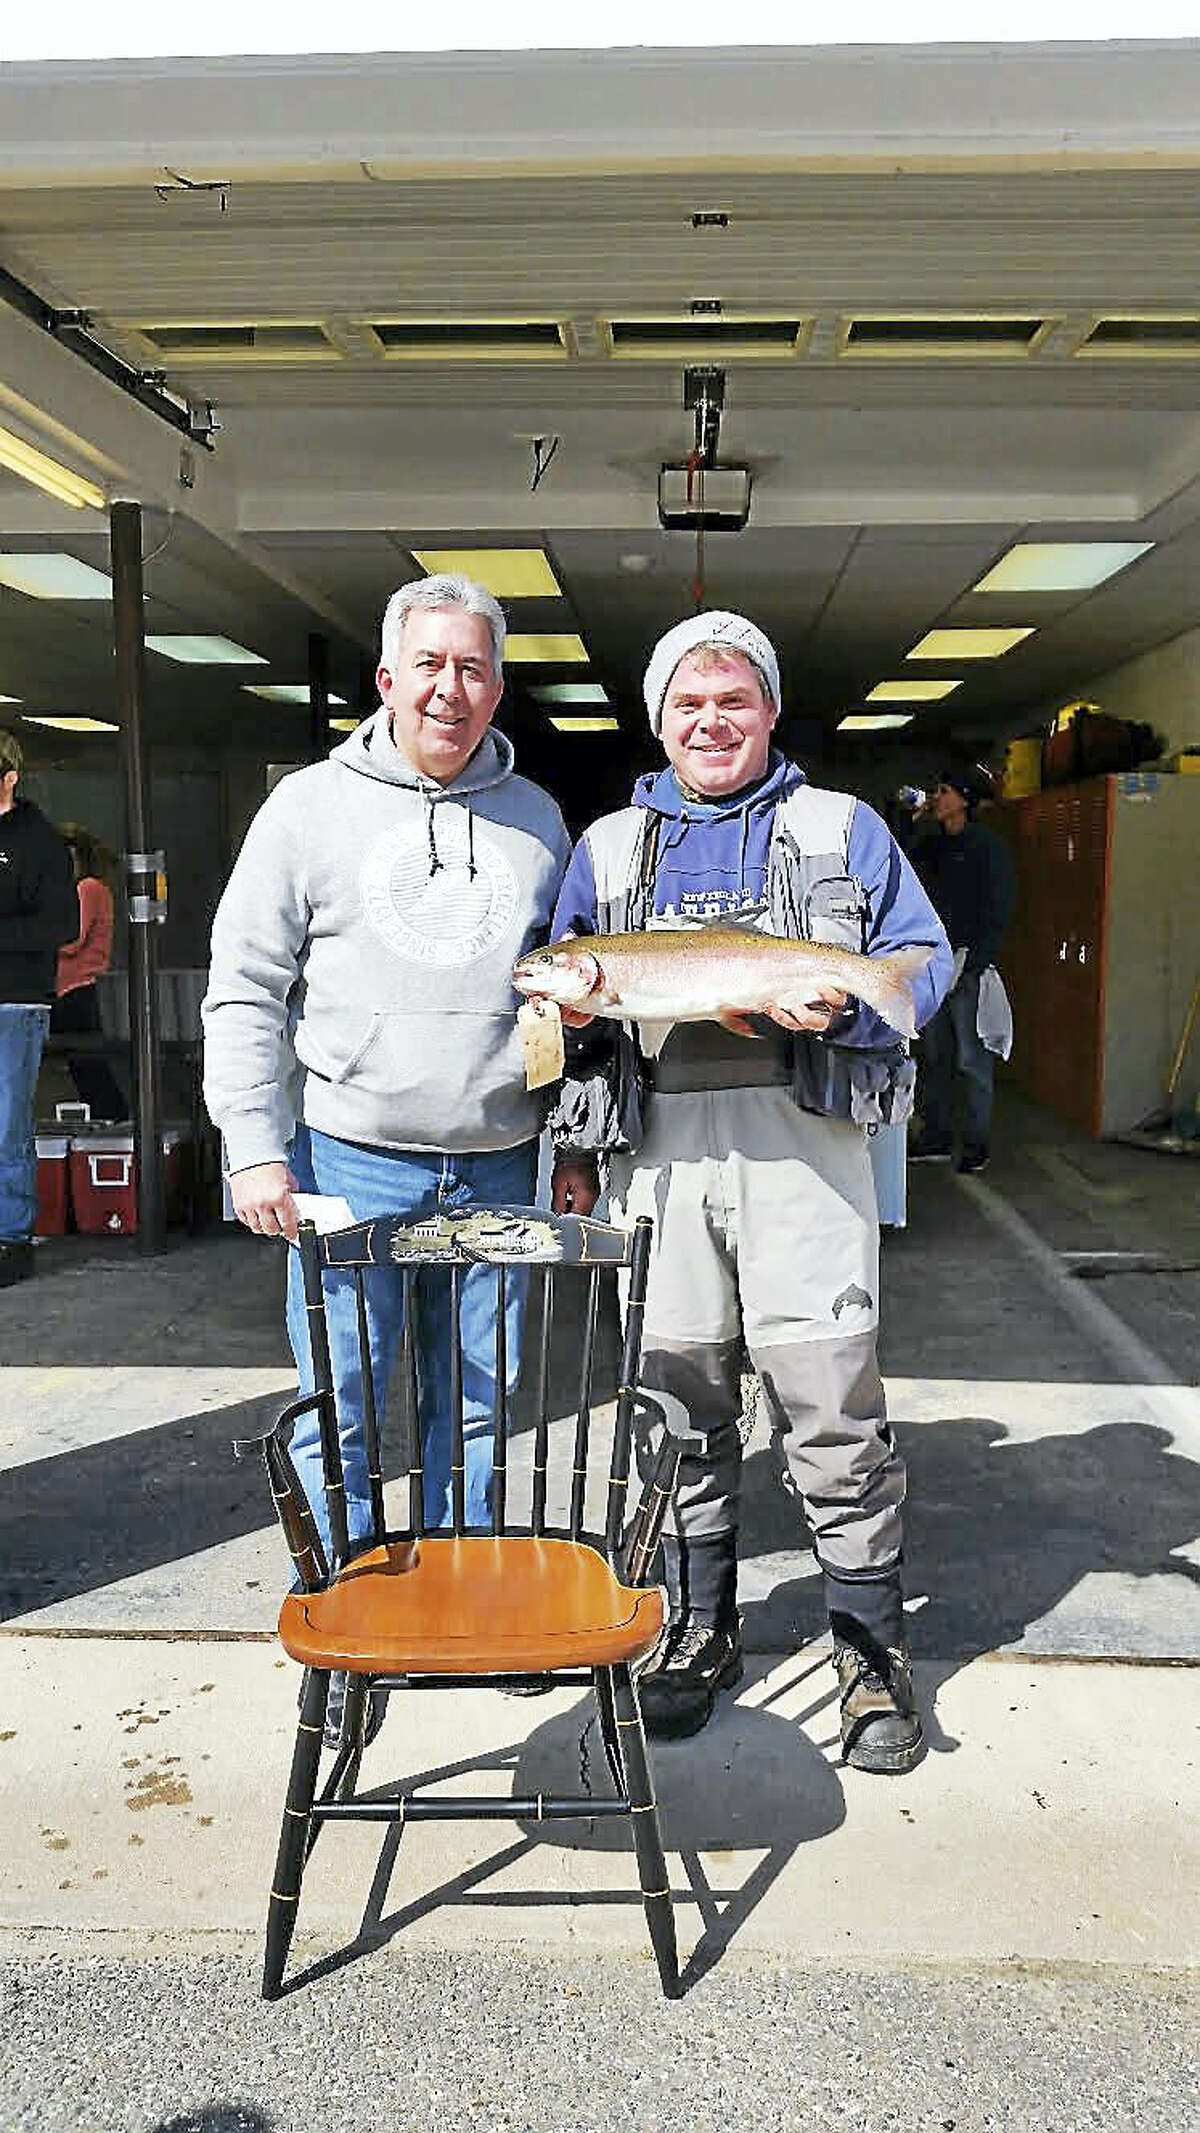 Brandon D'Angelo, 34, of Barkhamsted shows off his 24 ½-inch rainbow trout and his prize, a customized wooden Hitchcock chair, along with his father, Gary D'Angelo, of Winsted at the 67th annual Riverton Fishing Derby on the West branch of the Farmington River near the Old Riverton Inn at 436 E. River Road in Riverton Saturday.